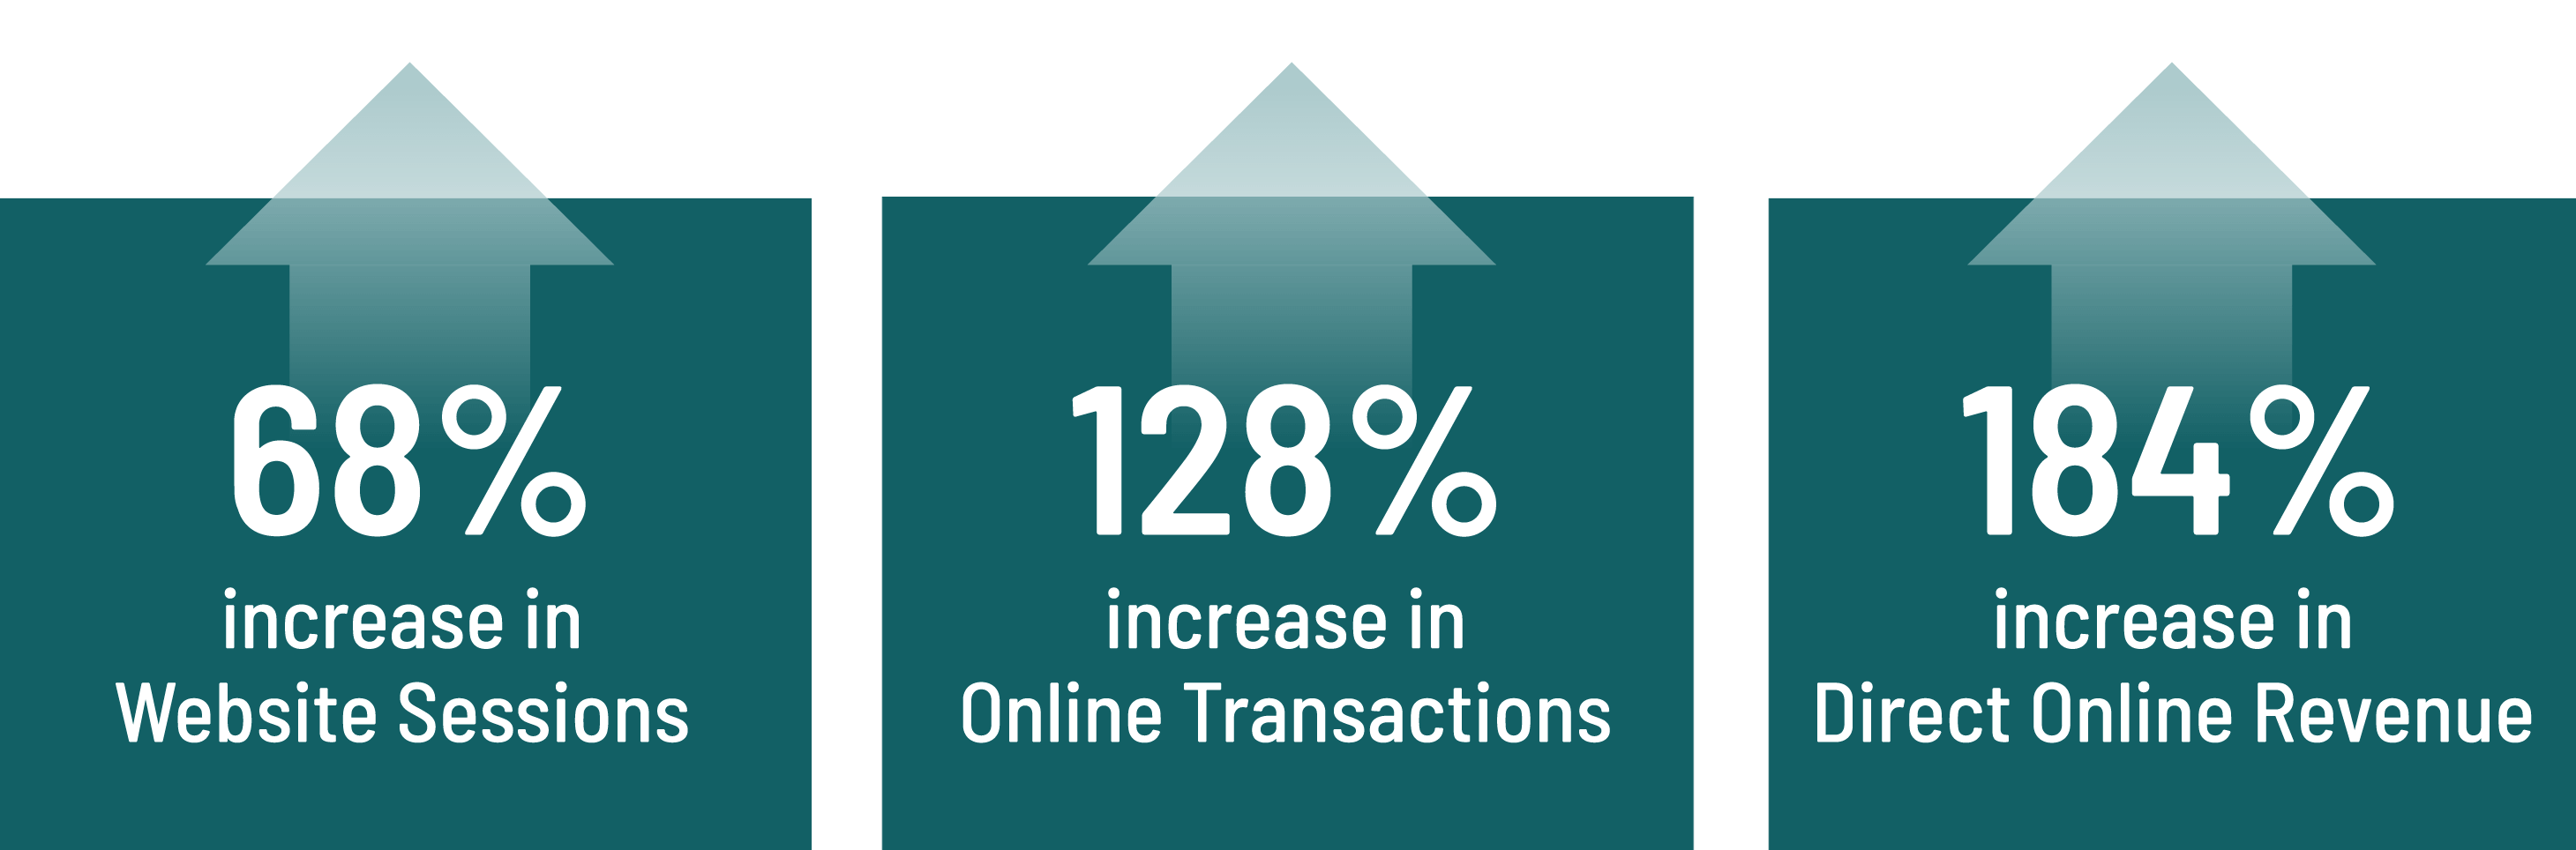 Online transaction increase chart